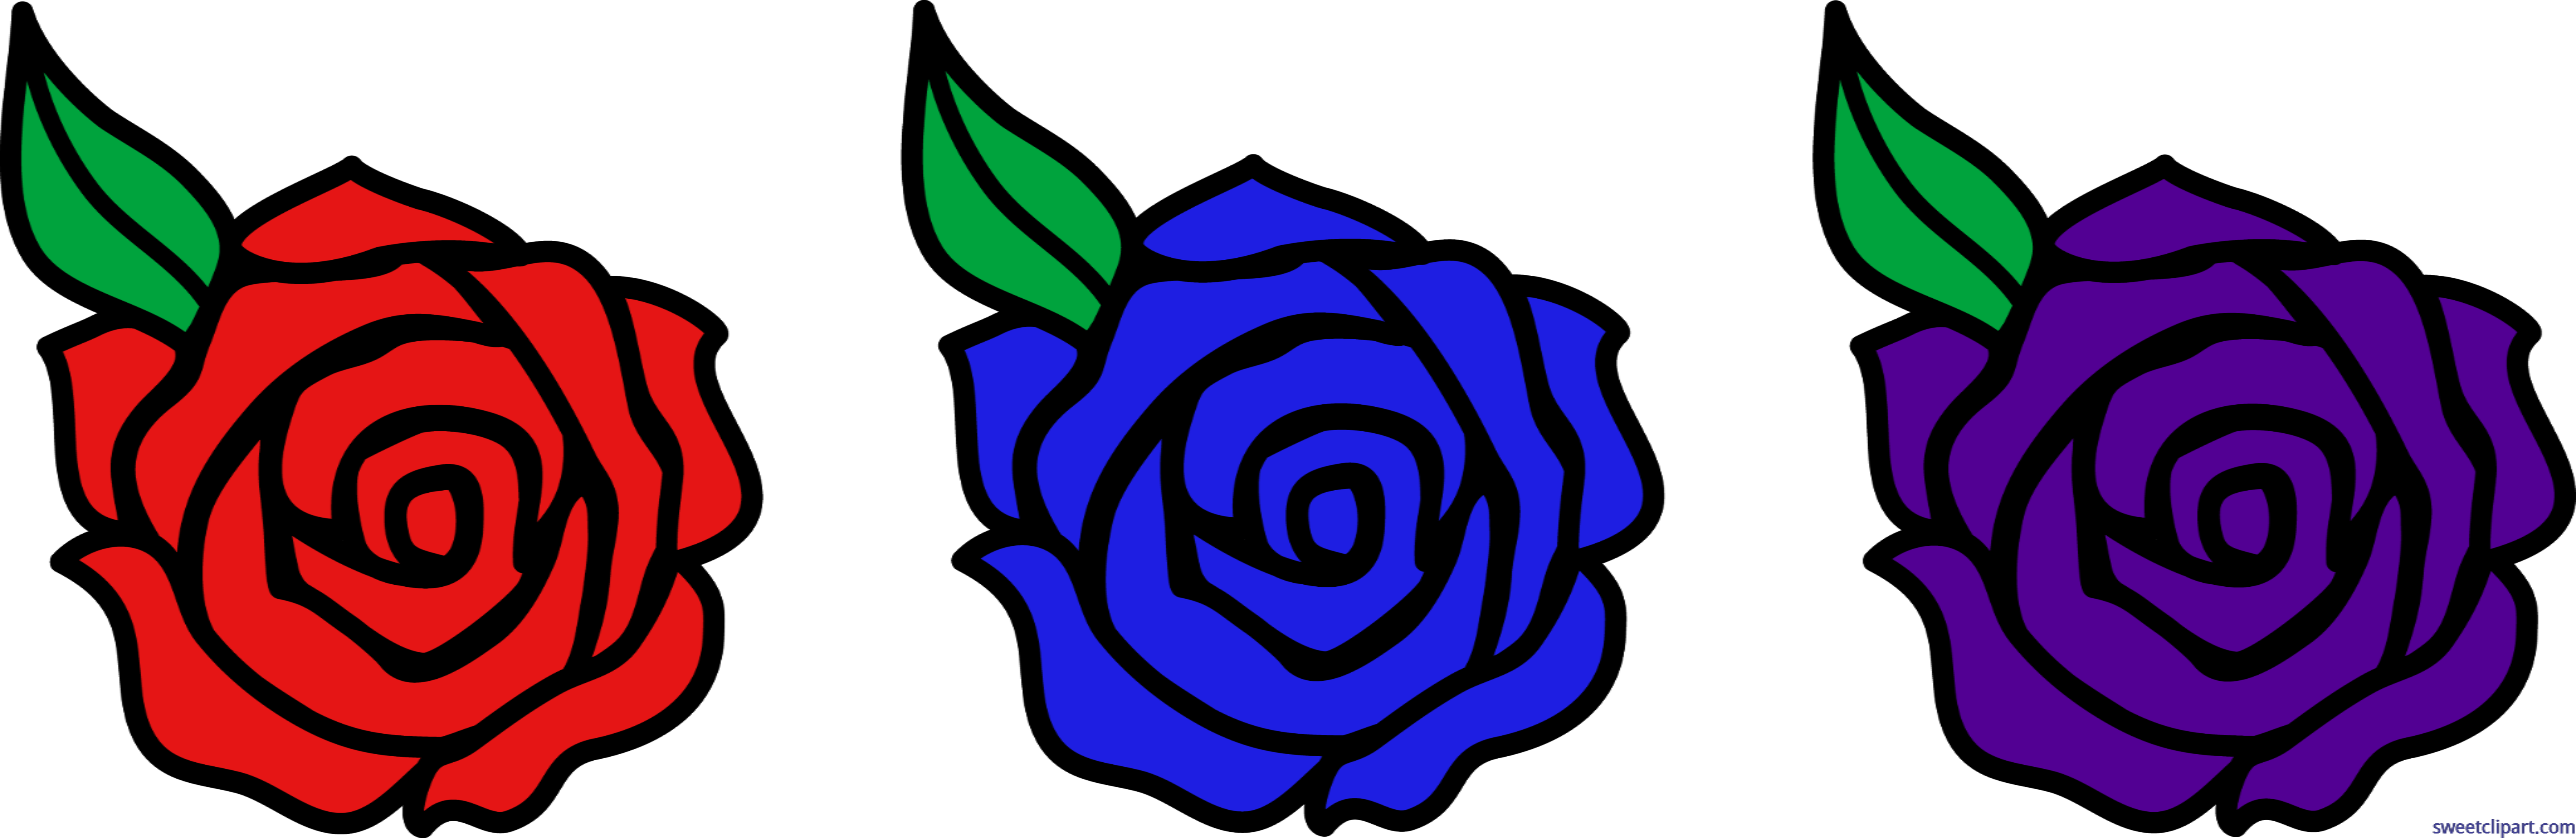 Blue Rose Clipart Blue Violet Free collection | Download and share ... png black and white download